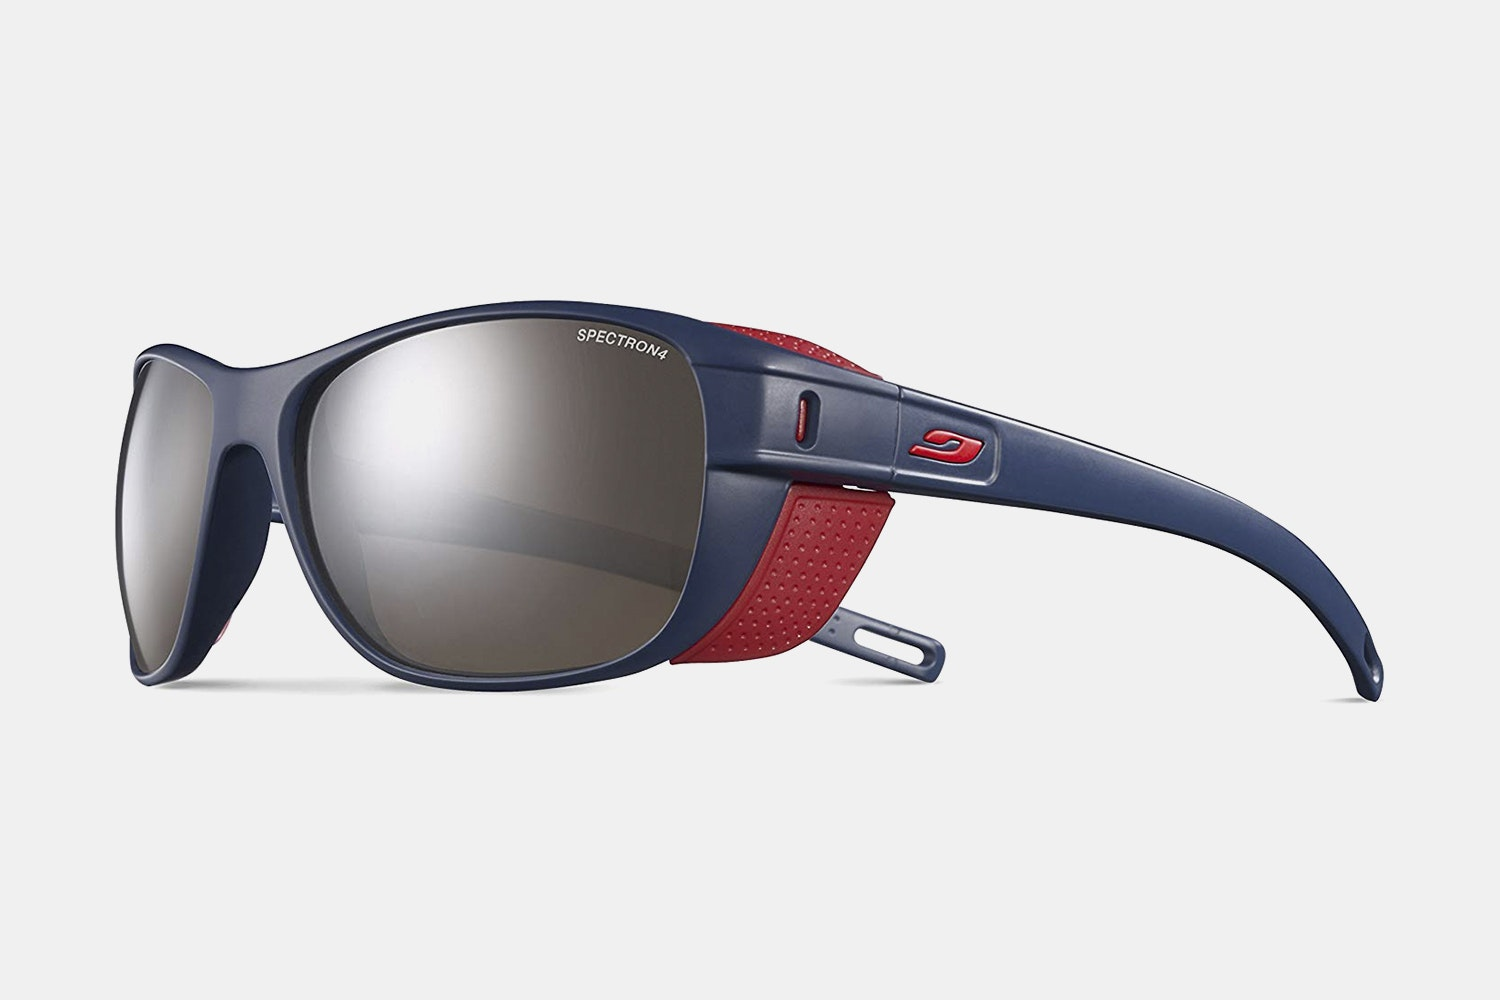 Camino Sunglasses Dark Blue/Red Frame With Spectron 4